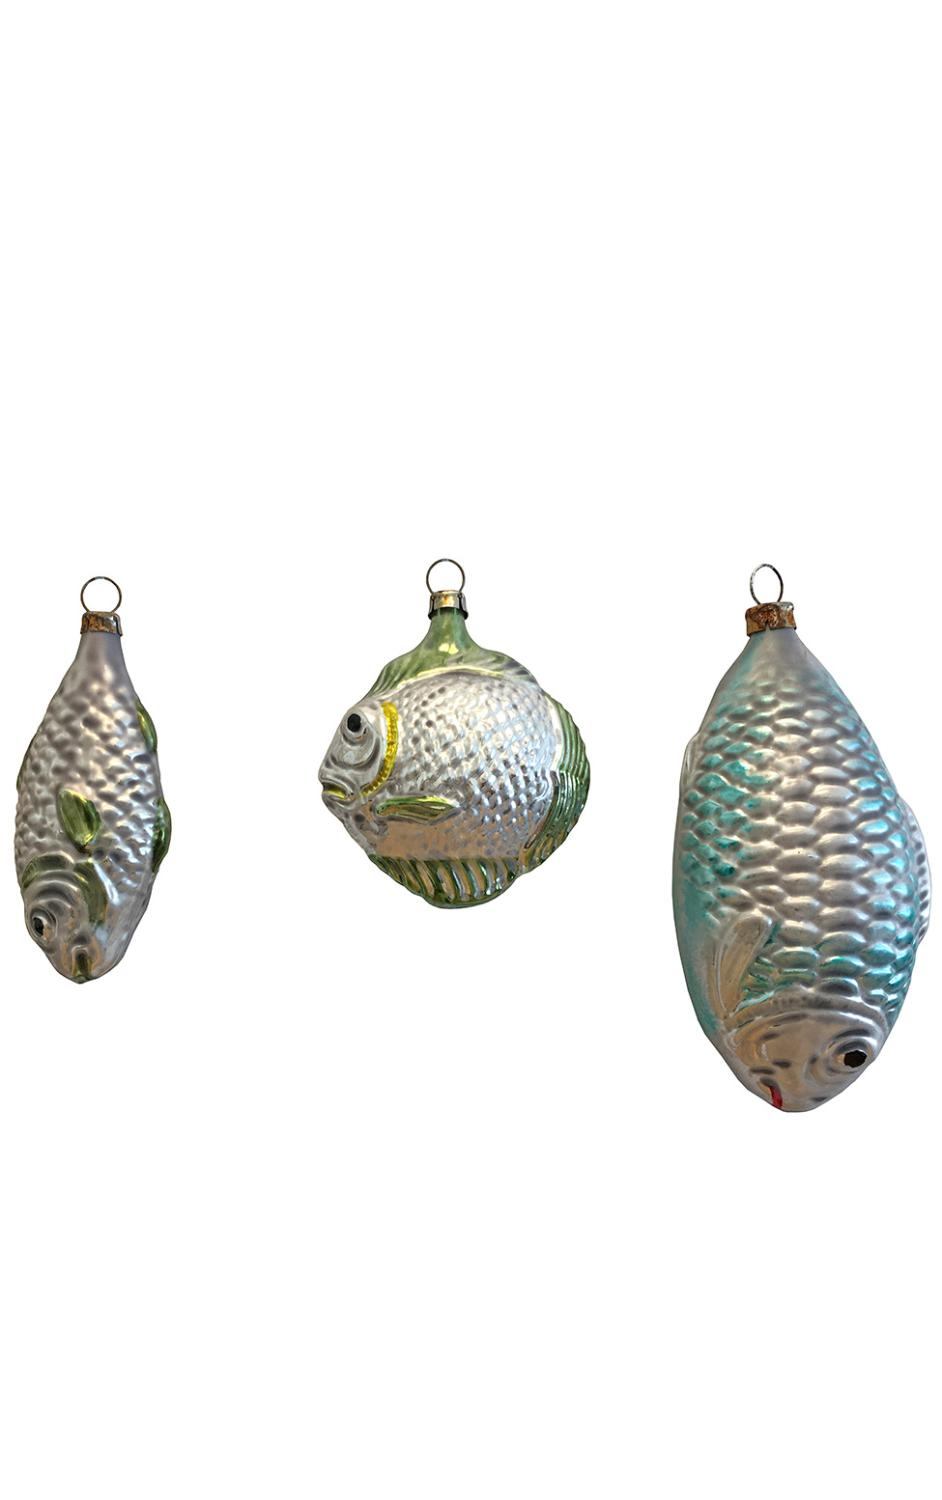 ZUX9 - Nostalgie Ornament - Assorted Glass Fish - Set of 3 - 3